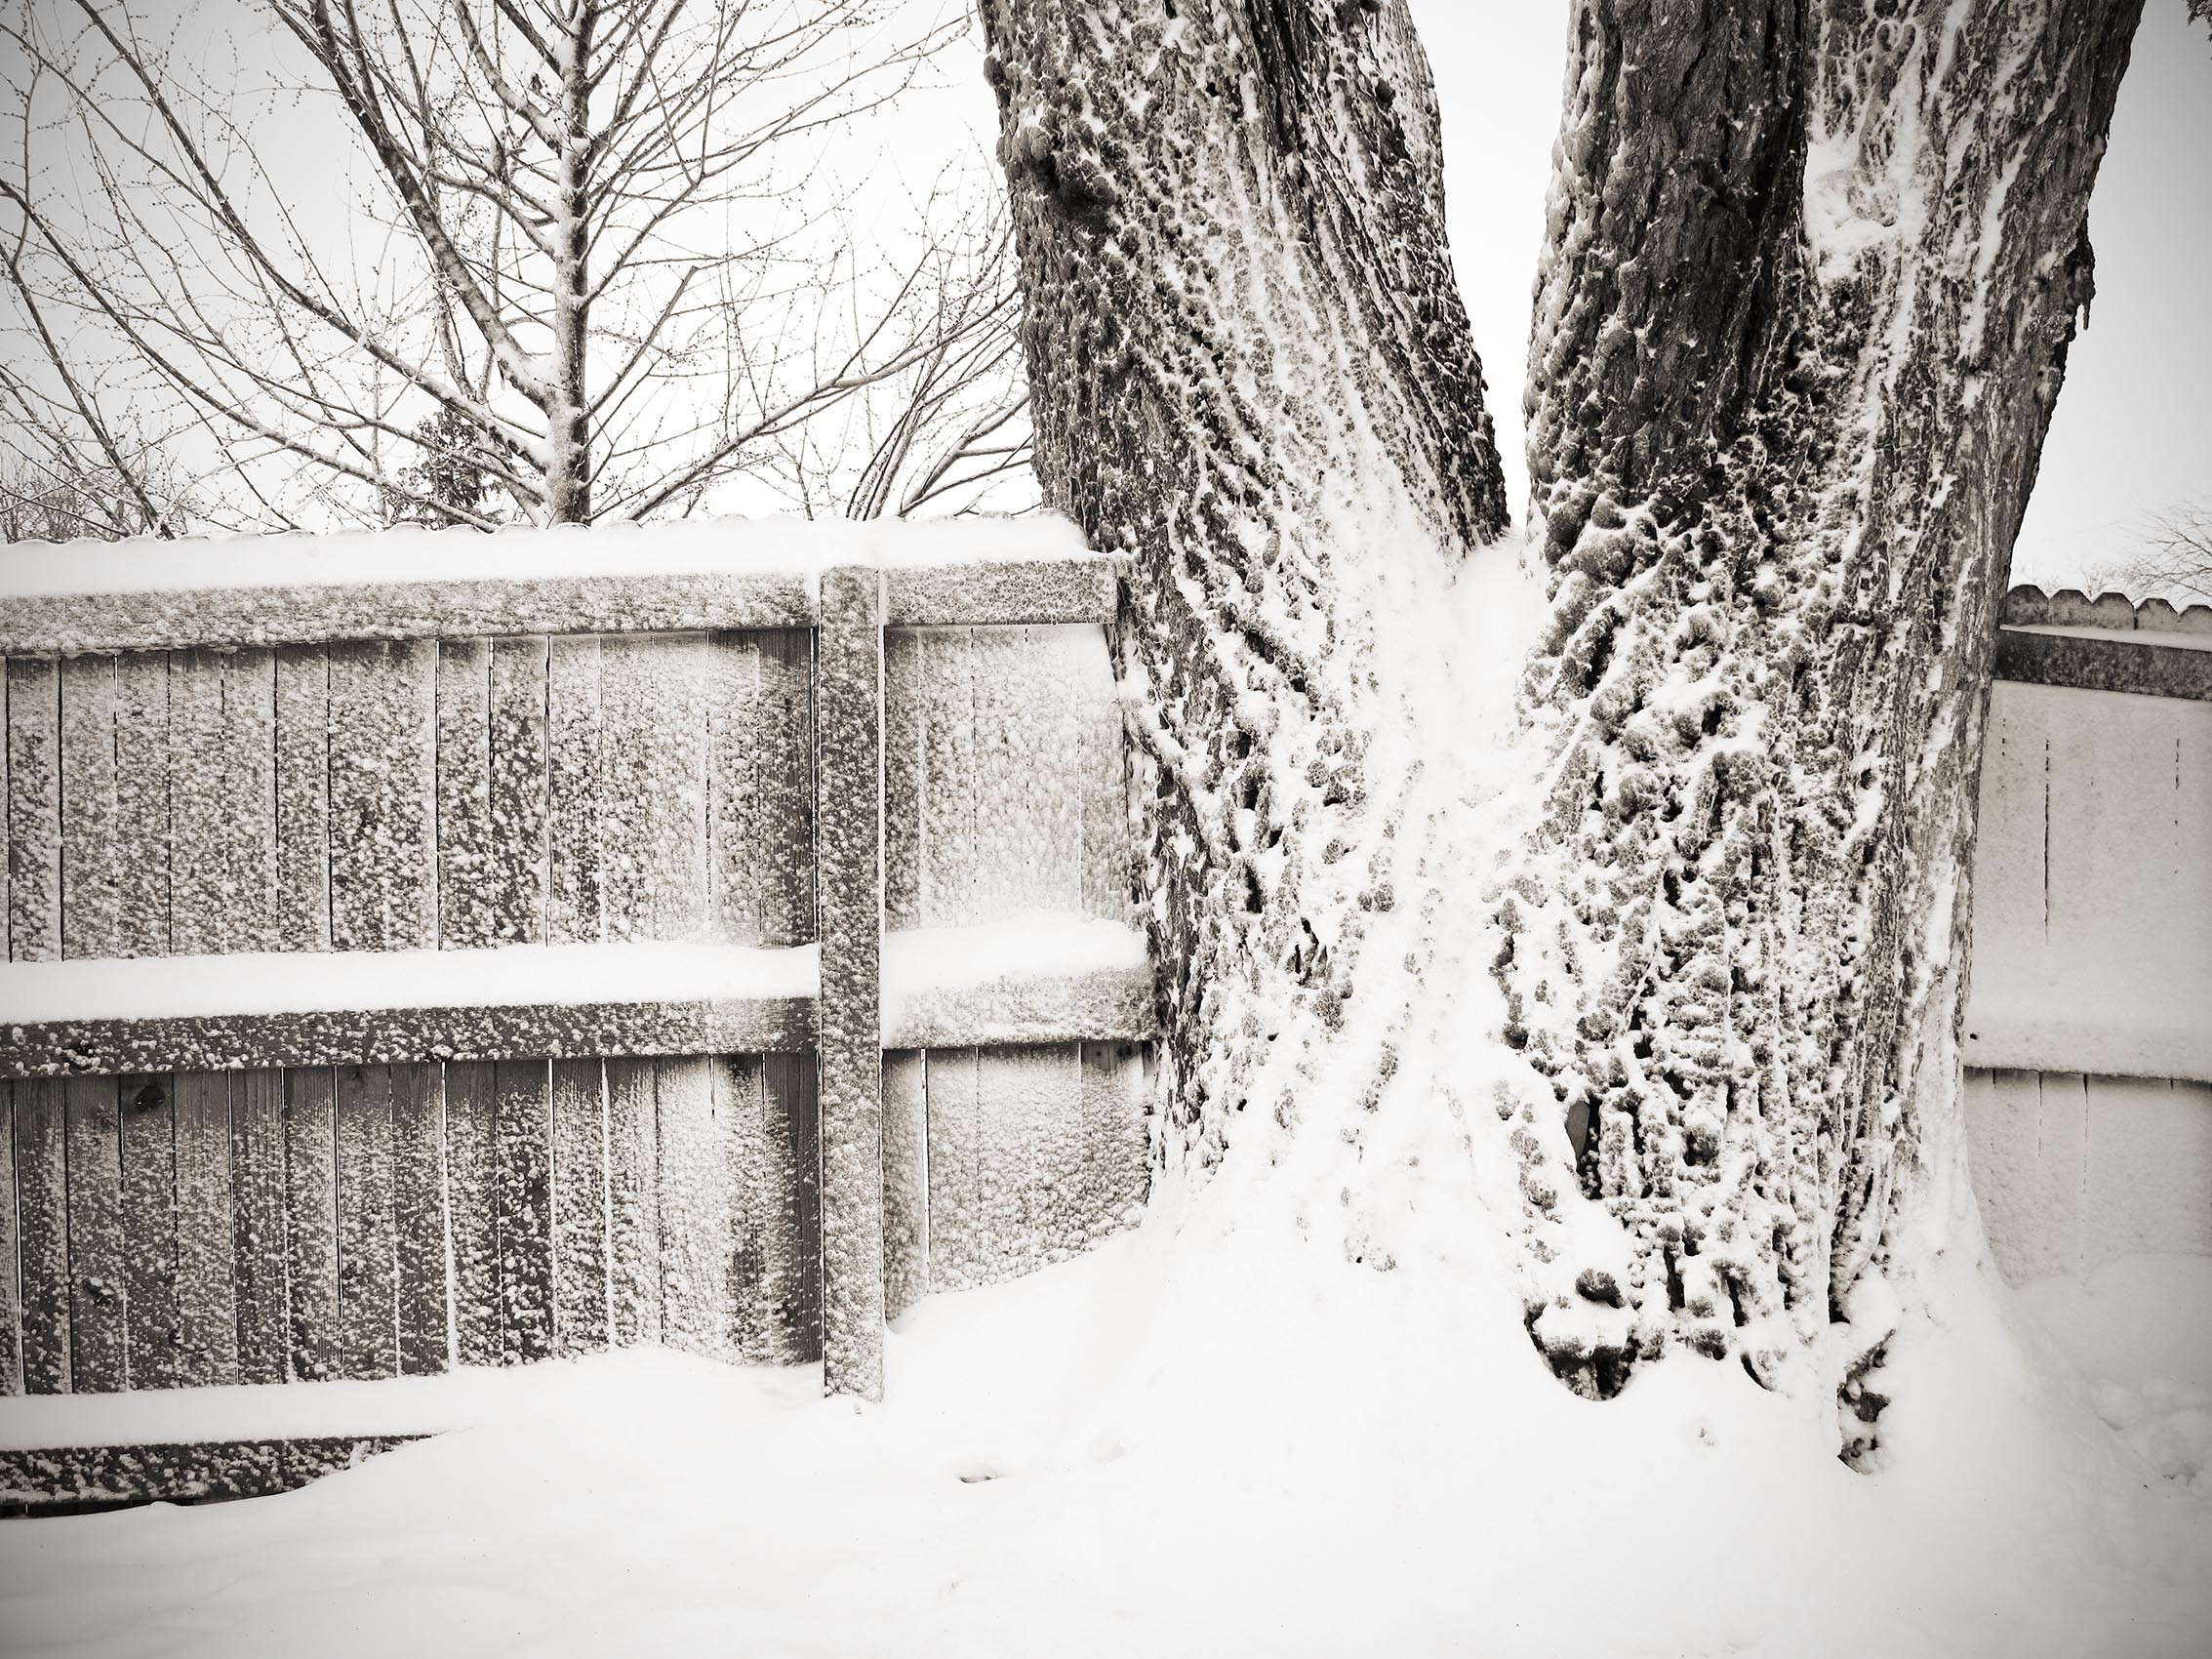 Snowy Elm and Fence